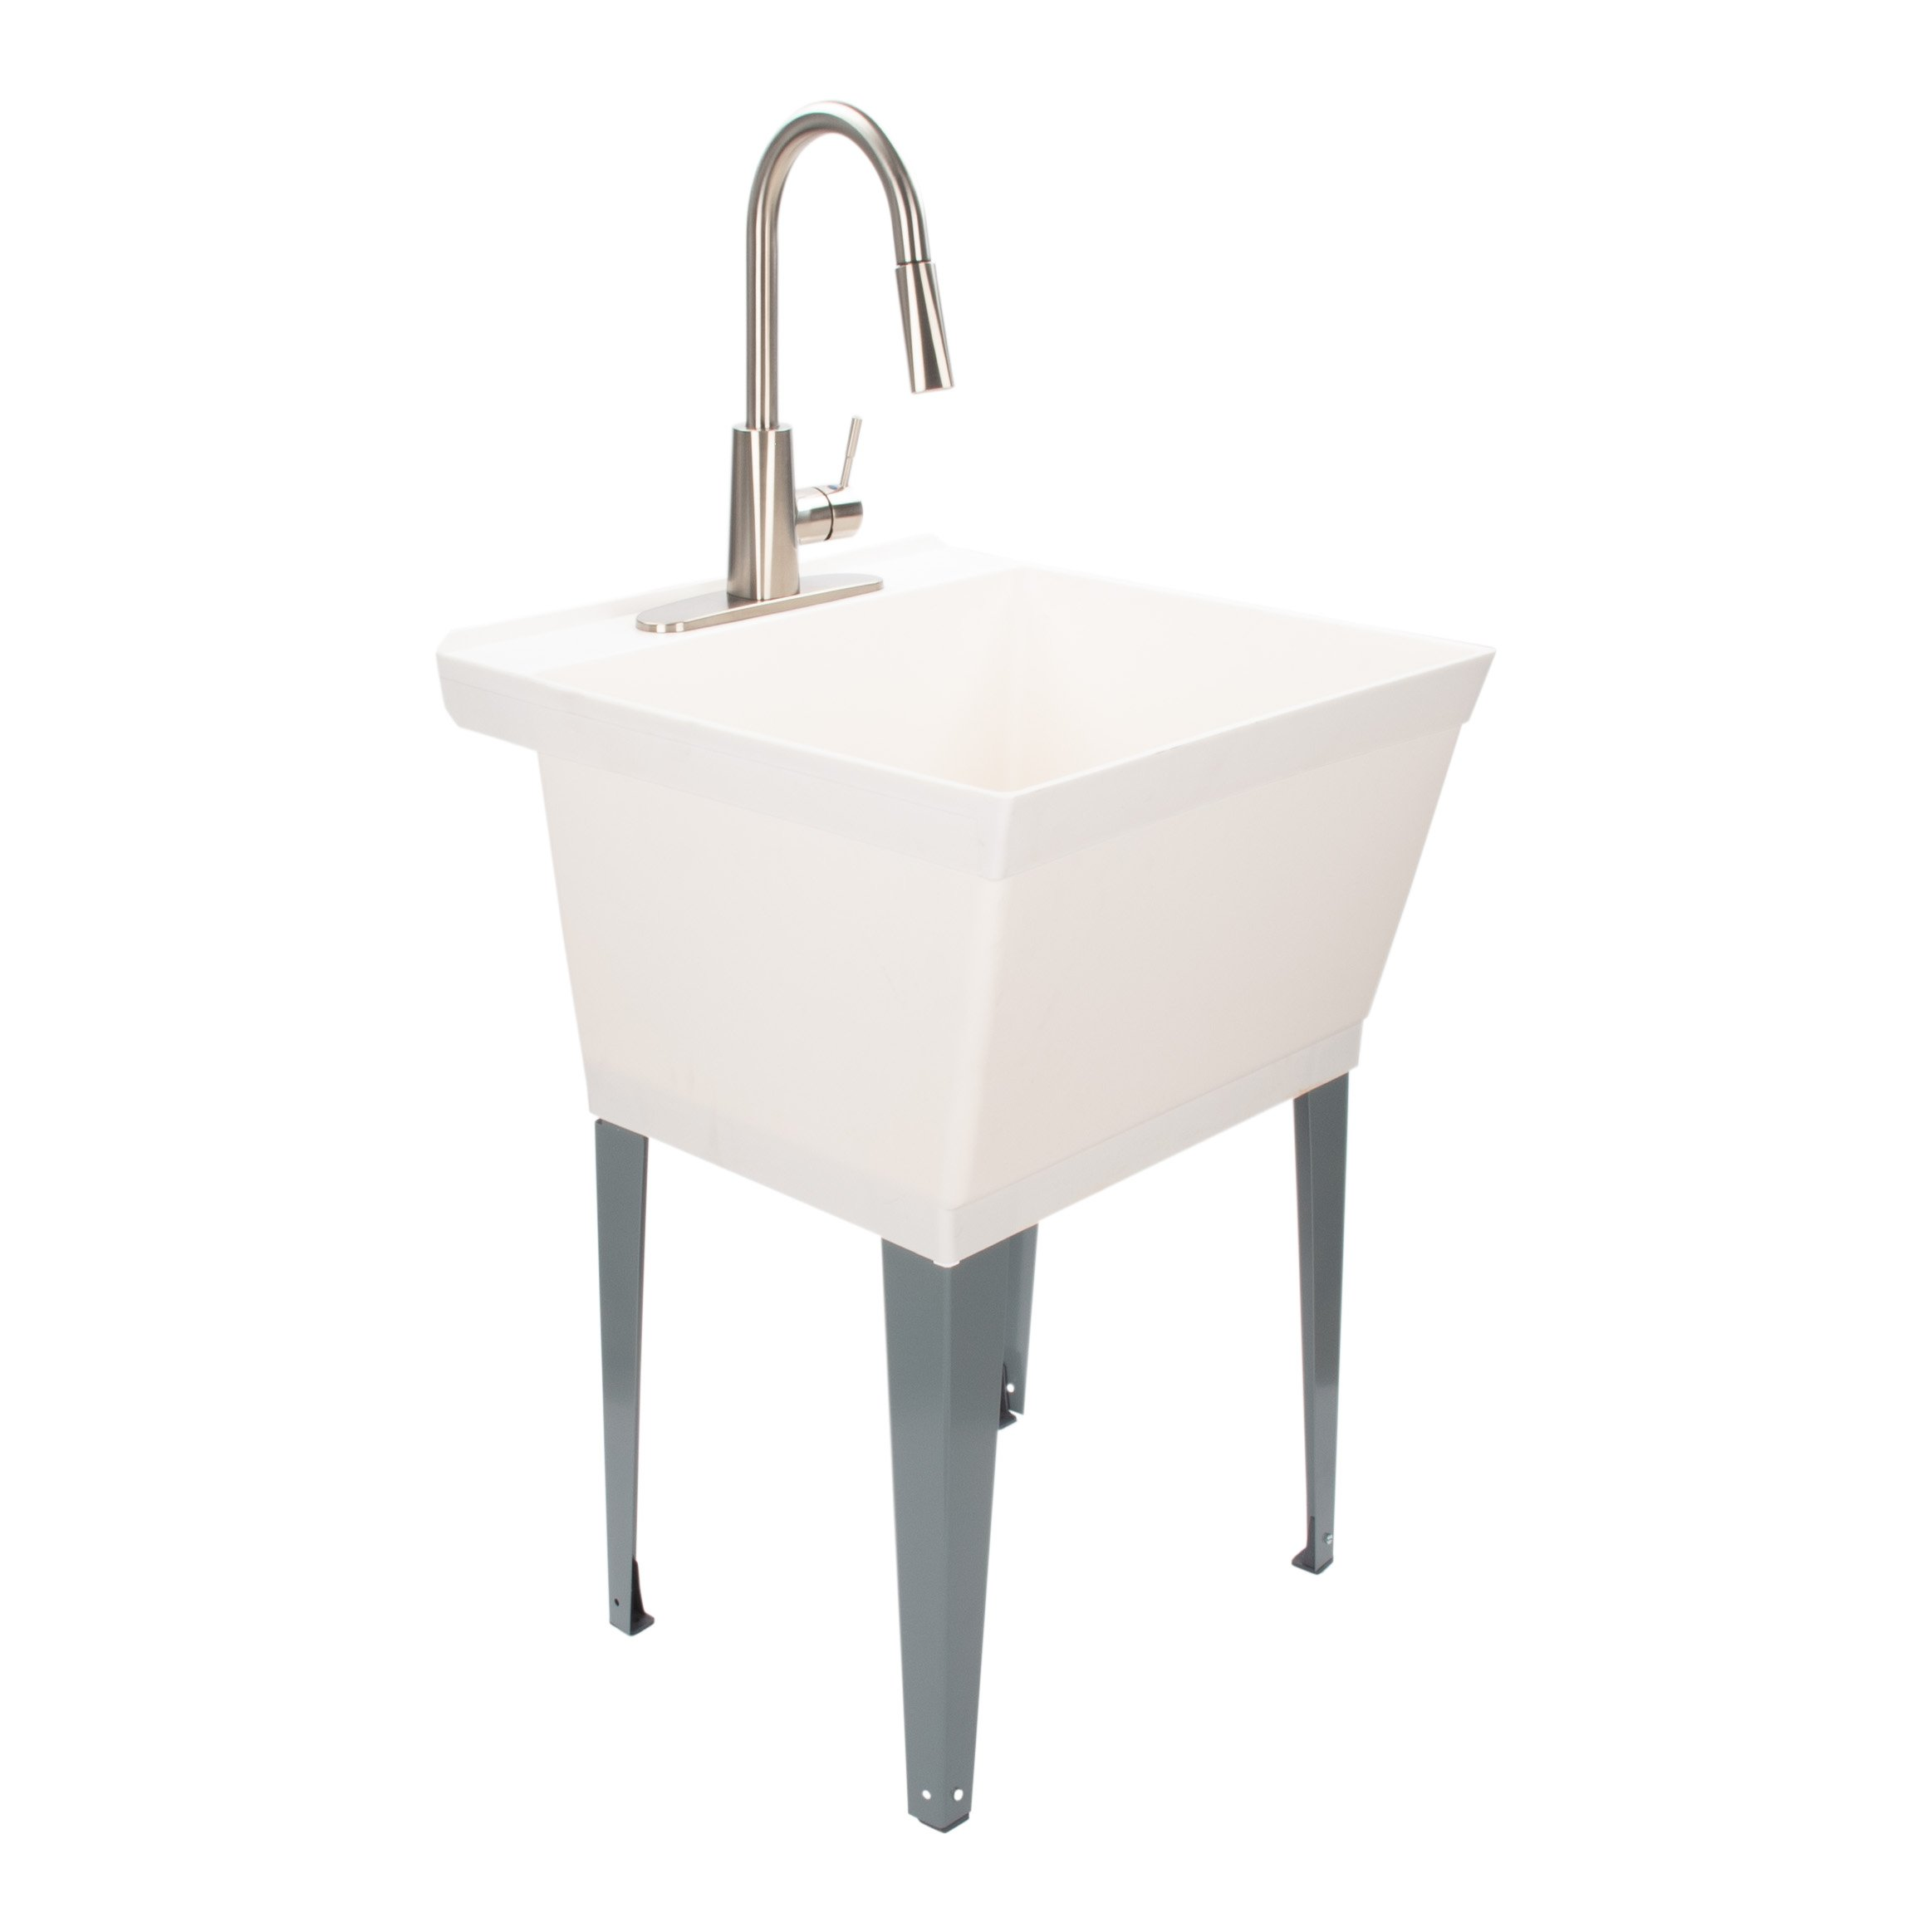 Laundry Sink Utility Tub with High Arc Stainless Steel Kitchen Faucet by Maya - Pull Down Sprayer Spout, Heavy Duty Sinks with Installation Kit for Washing Room, Workshop, Basement, Garage, Slop Sink